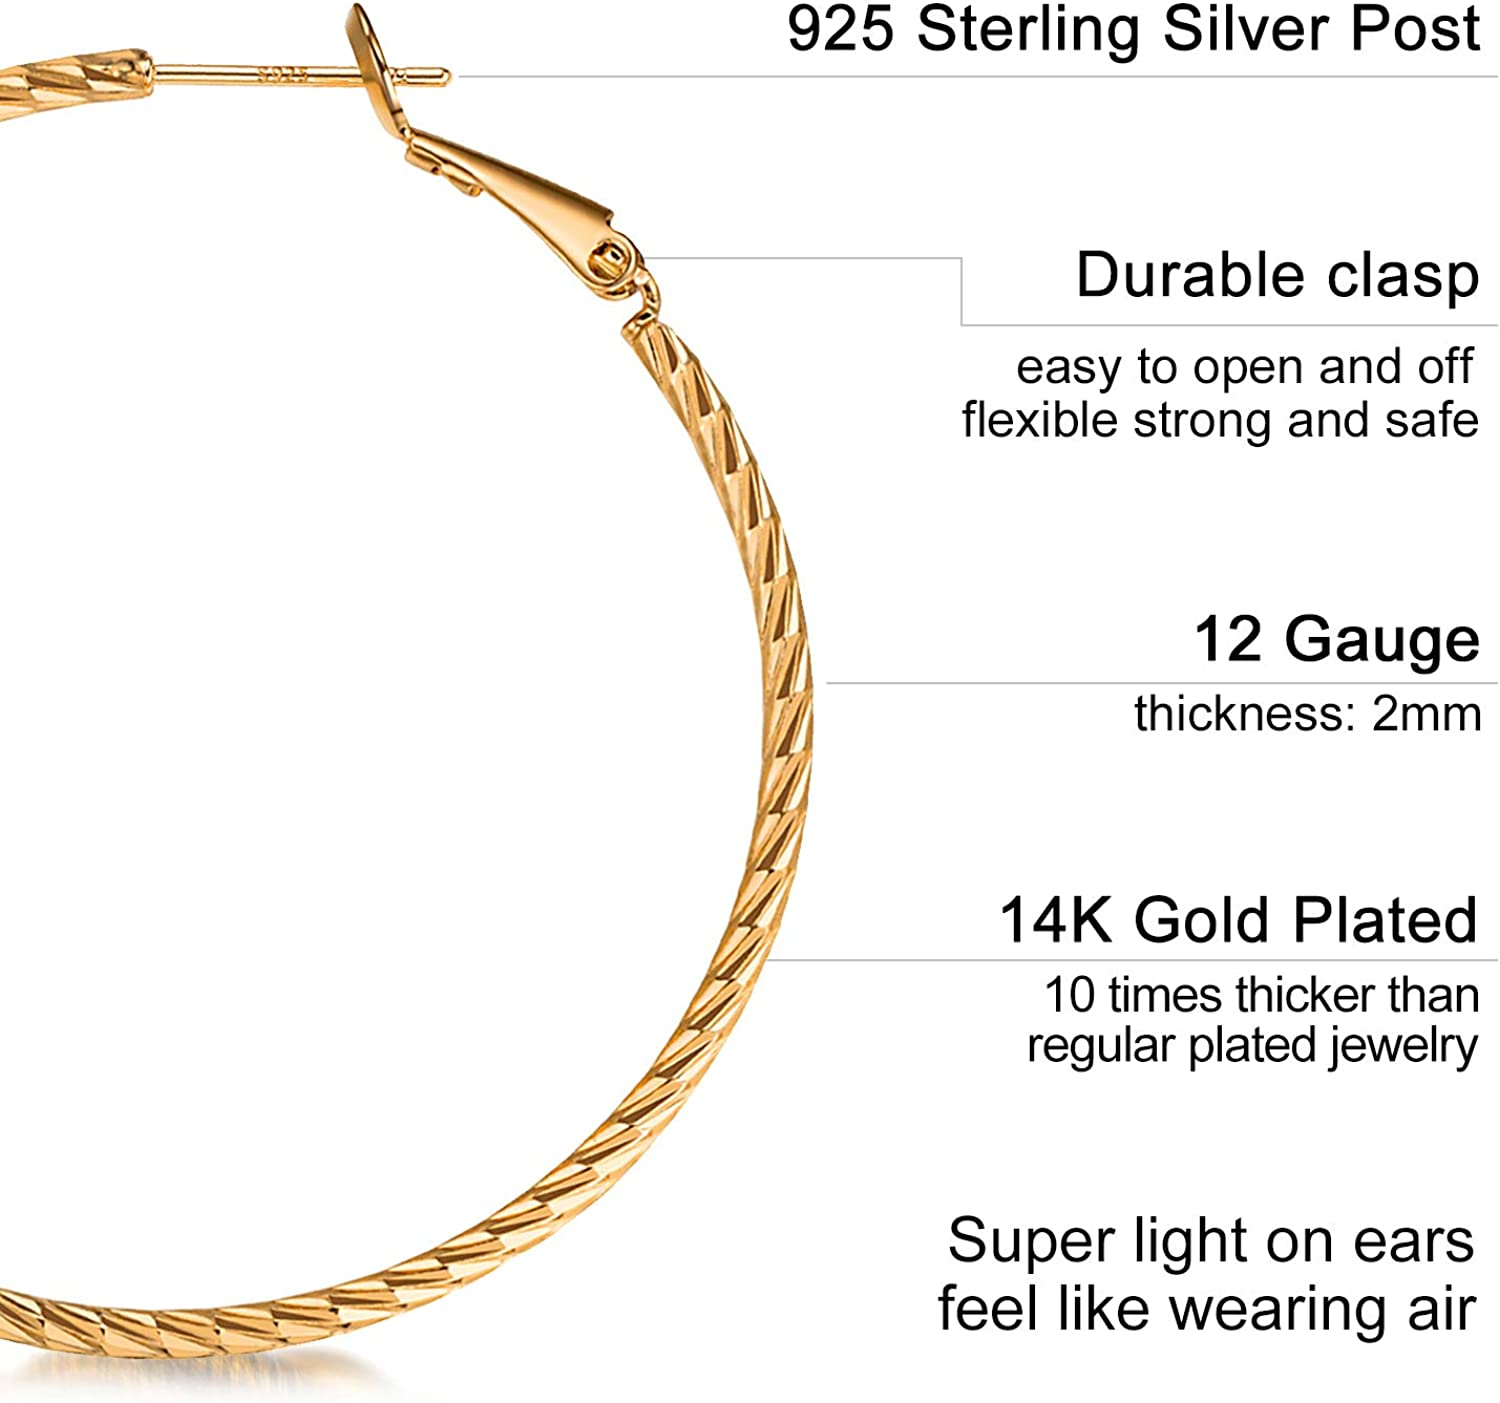 Rose Gold Free Drops Gold Filled X-LARGE SWIRL HOOPS Hammered Interchangeable Earrings for charms Sterling Silver